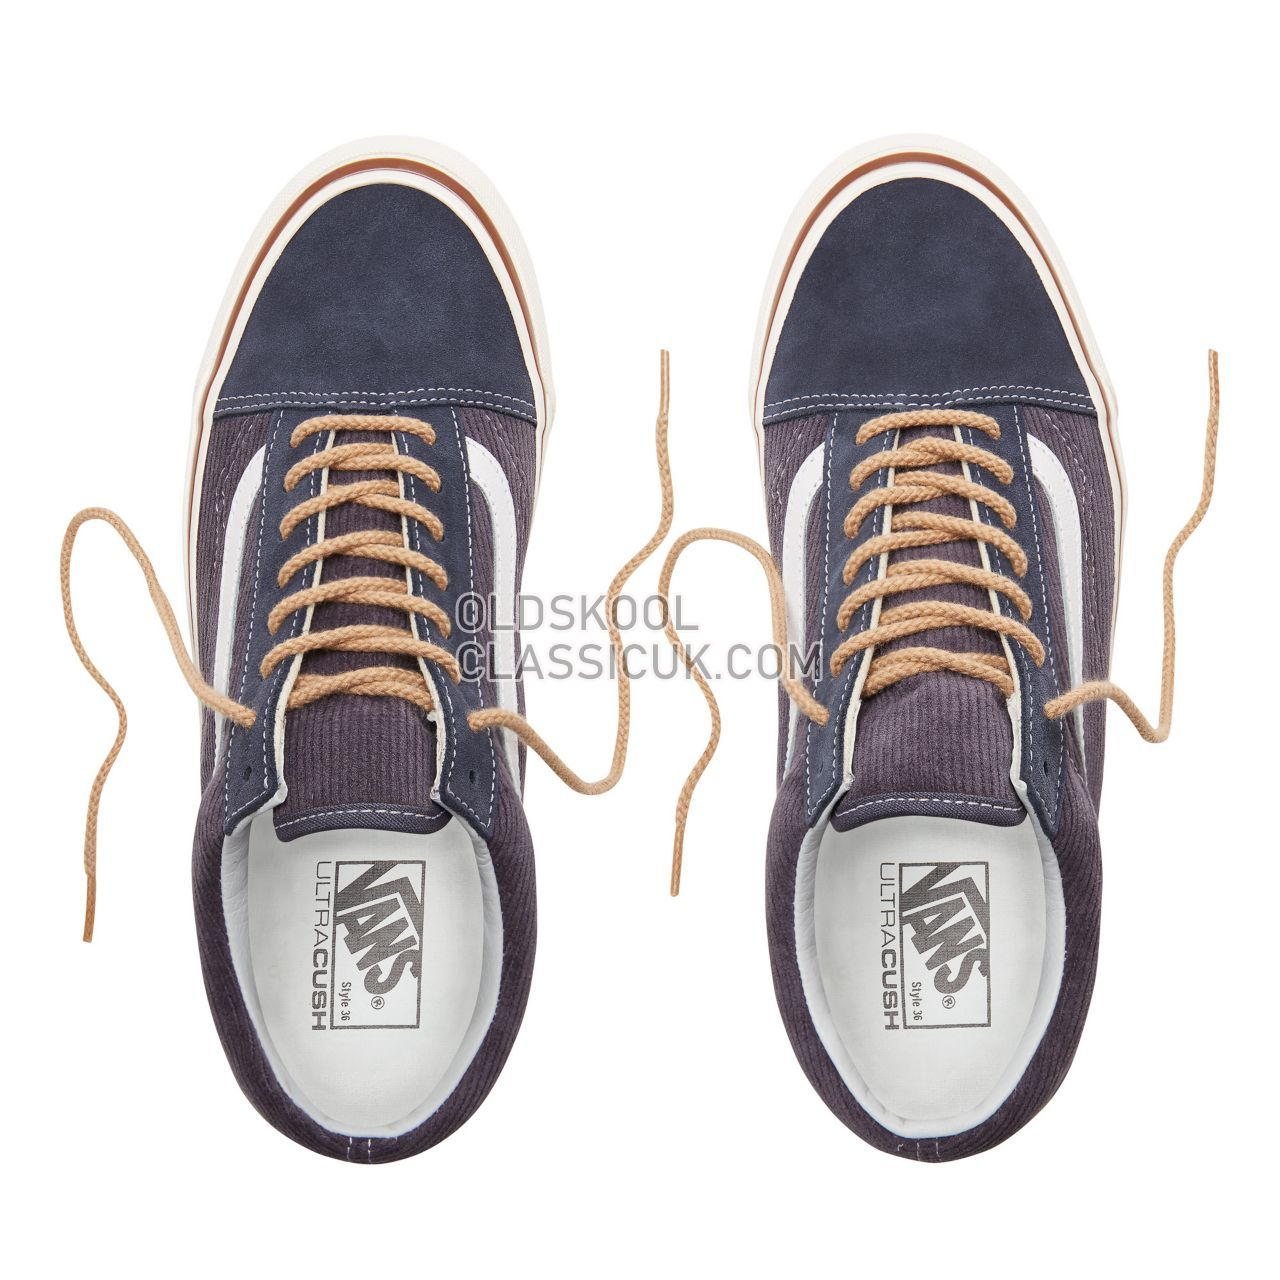 Vans Anaheim Factory Old Skool 36 Dx Sneakers Mens Womens Unisex (Anaheim Factory) Og Navy/Suede/Corduroy VN0A38G2UPH Shoes